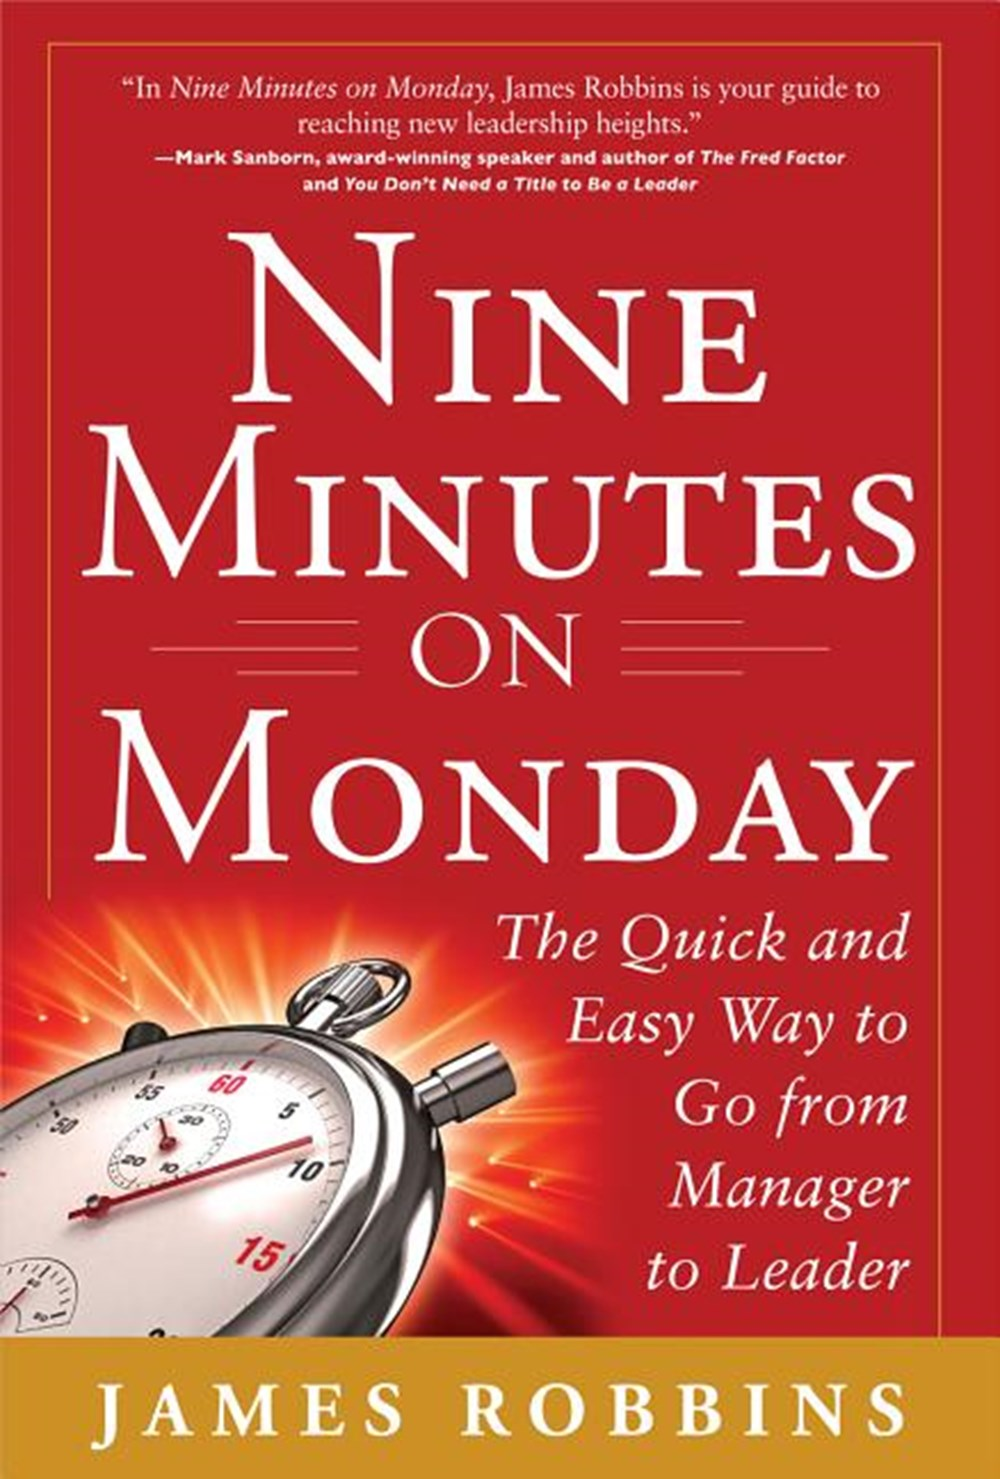 Nine Minutes on Monday The Quick and Easy Way to Go from Manager to Leader